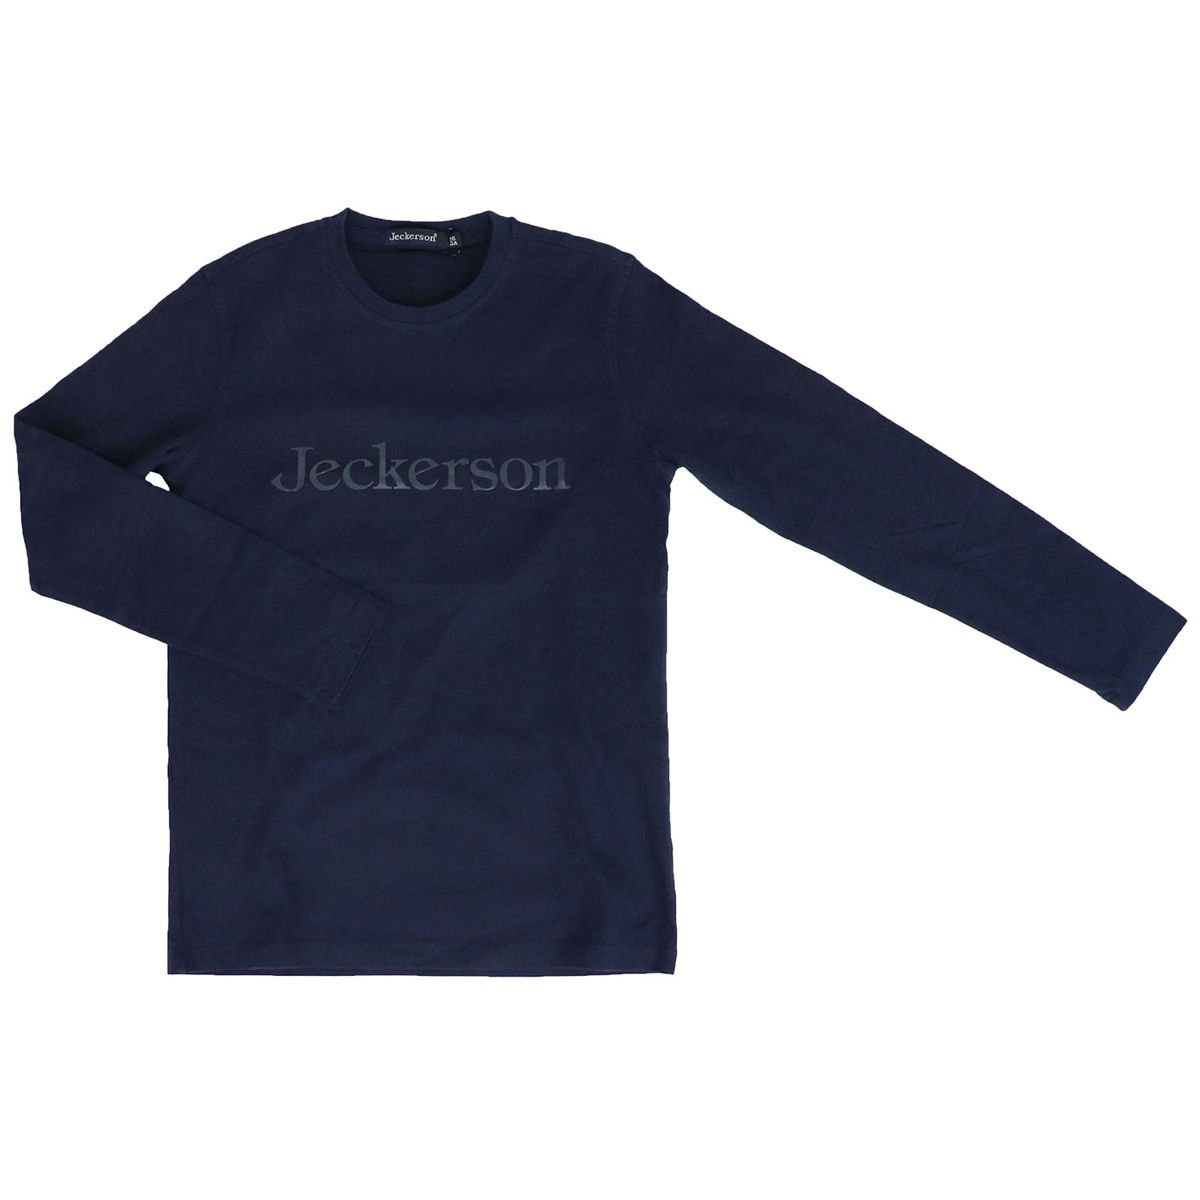 Cotton crew neck sweater with contrasting logo print Navy Jeckerson